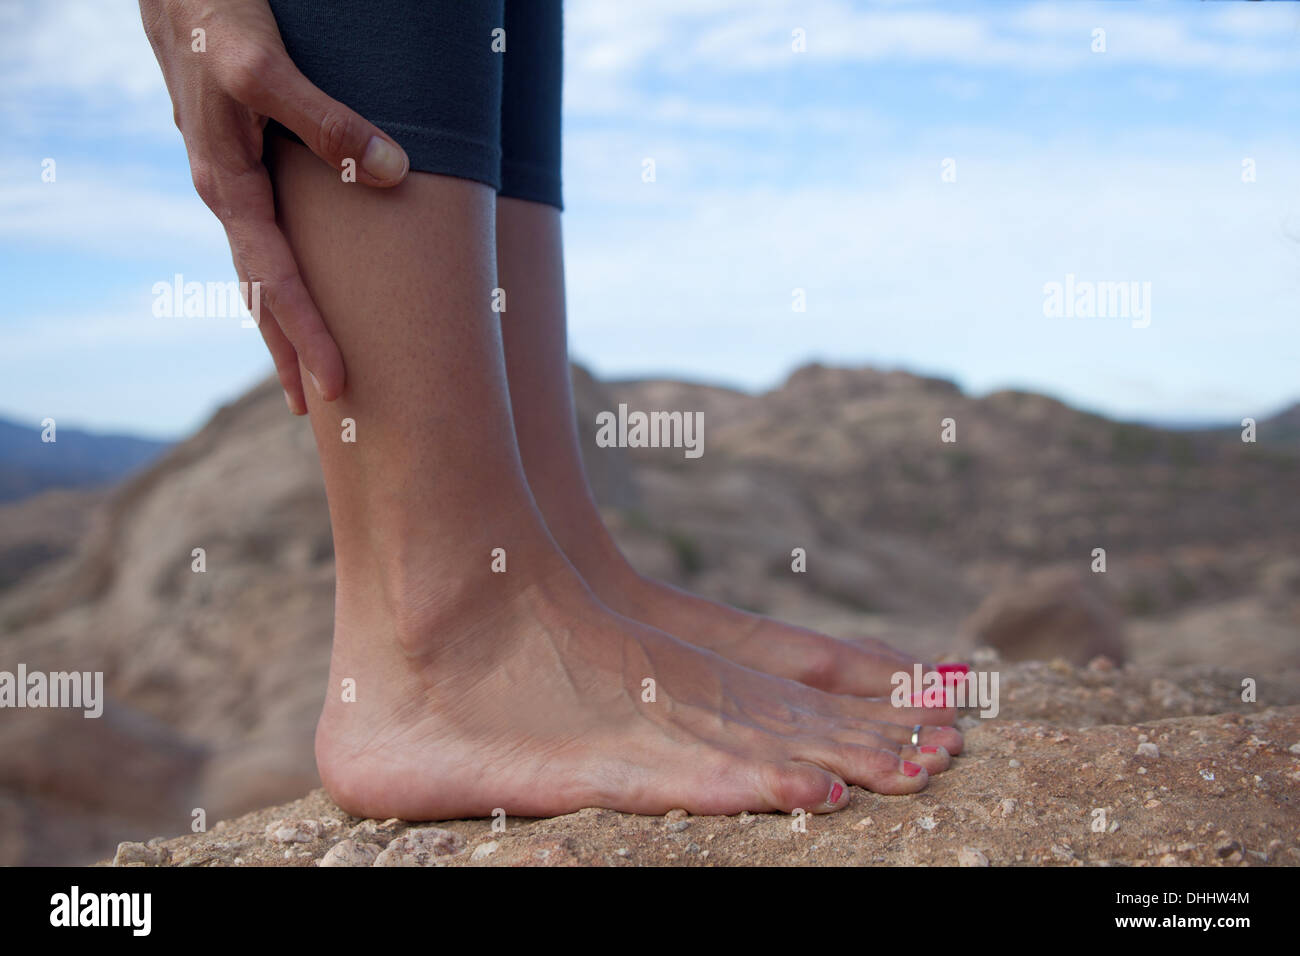 Cropped image of woman's bare feet standing on rocks - Stock Image